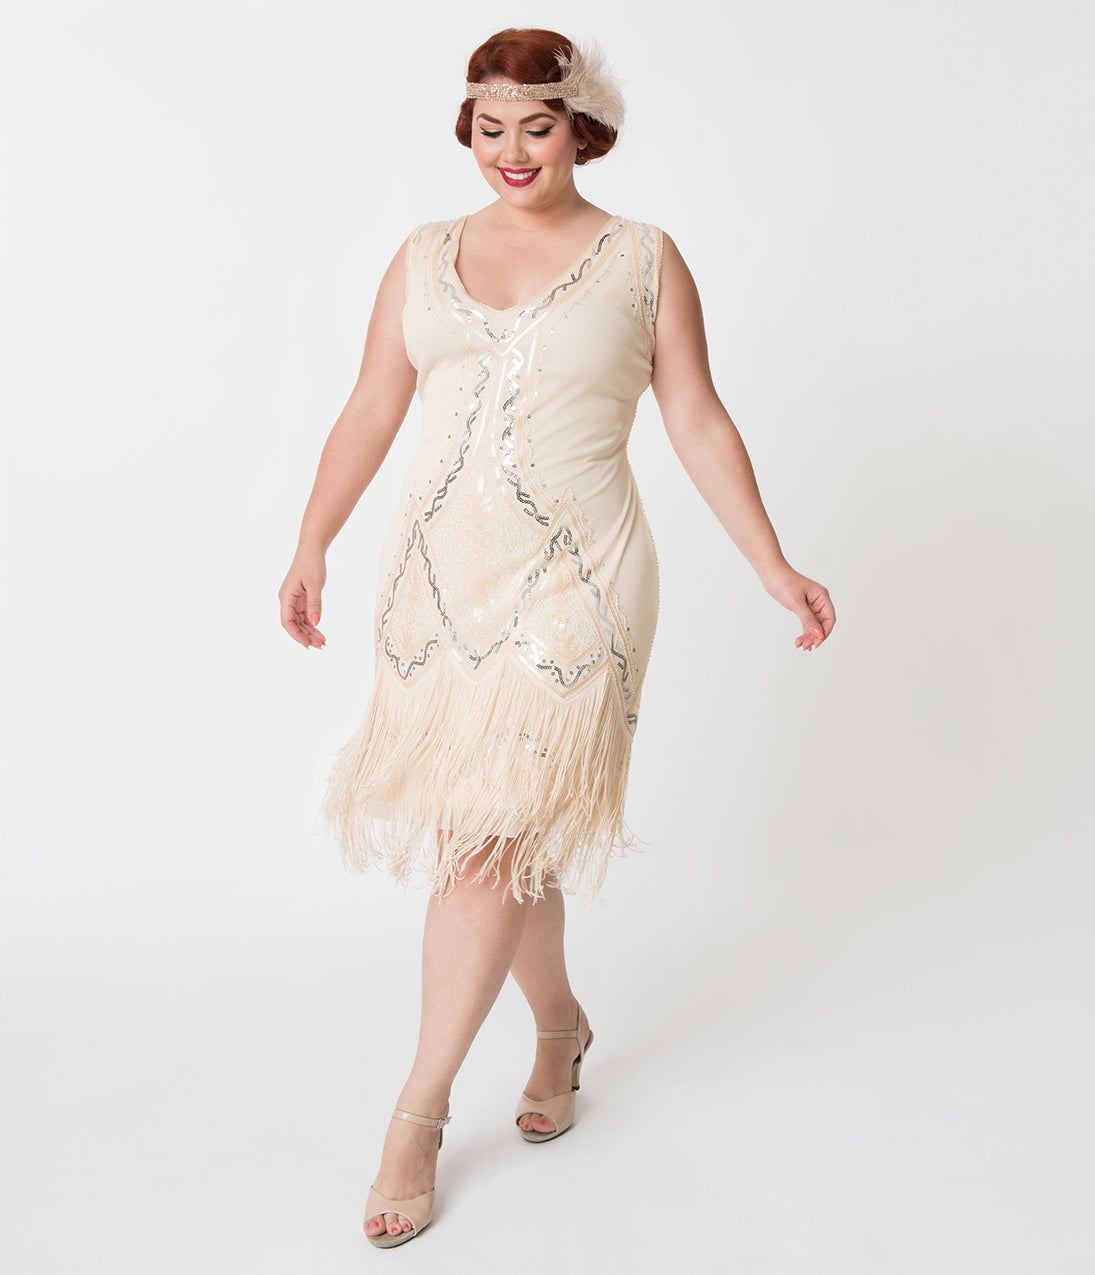 1920s Style Dresses, Flapper Dresses Unique Vintage Plus Size 1920S Style Cream Beaded Sylvie Flapper Dress $98.00 AT vintagedancer.com